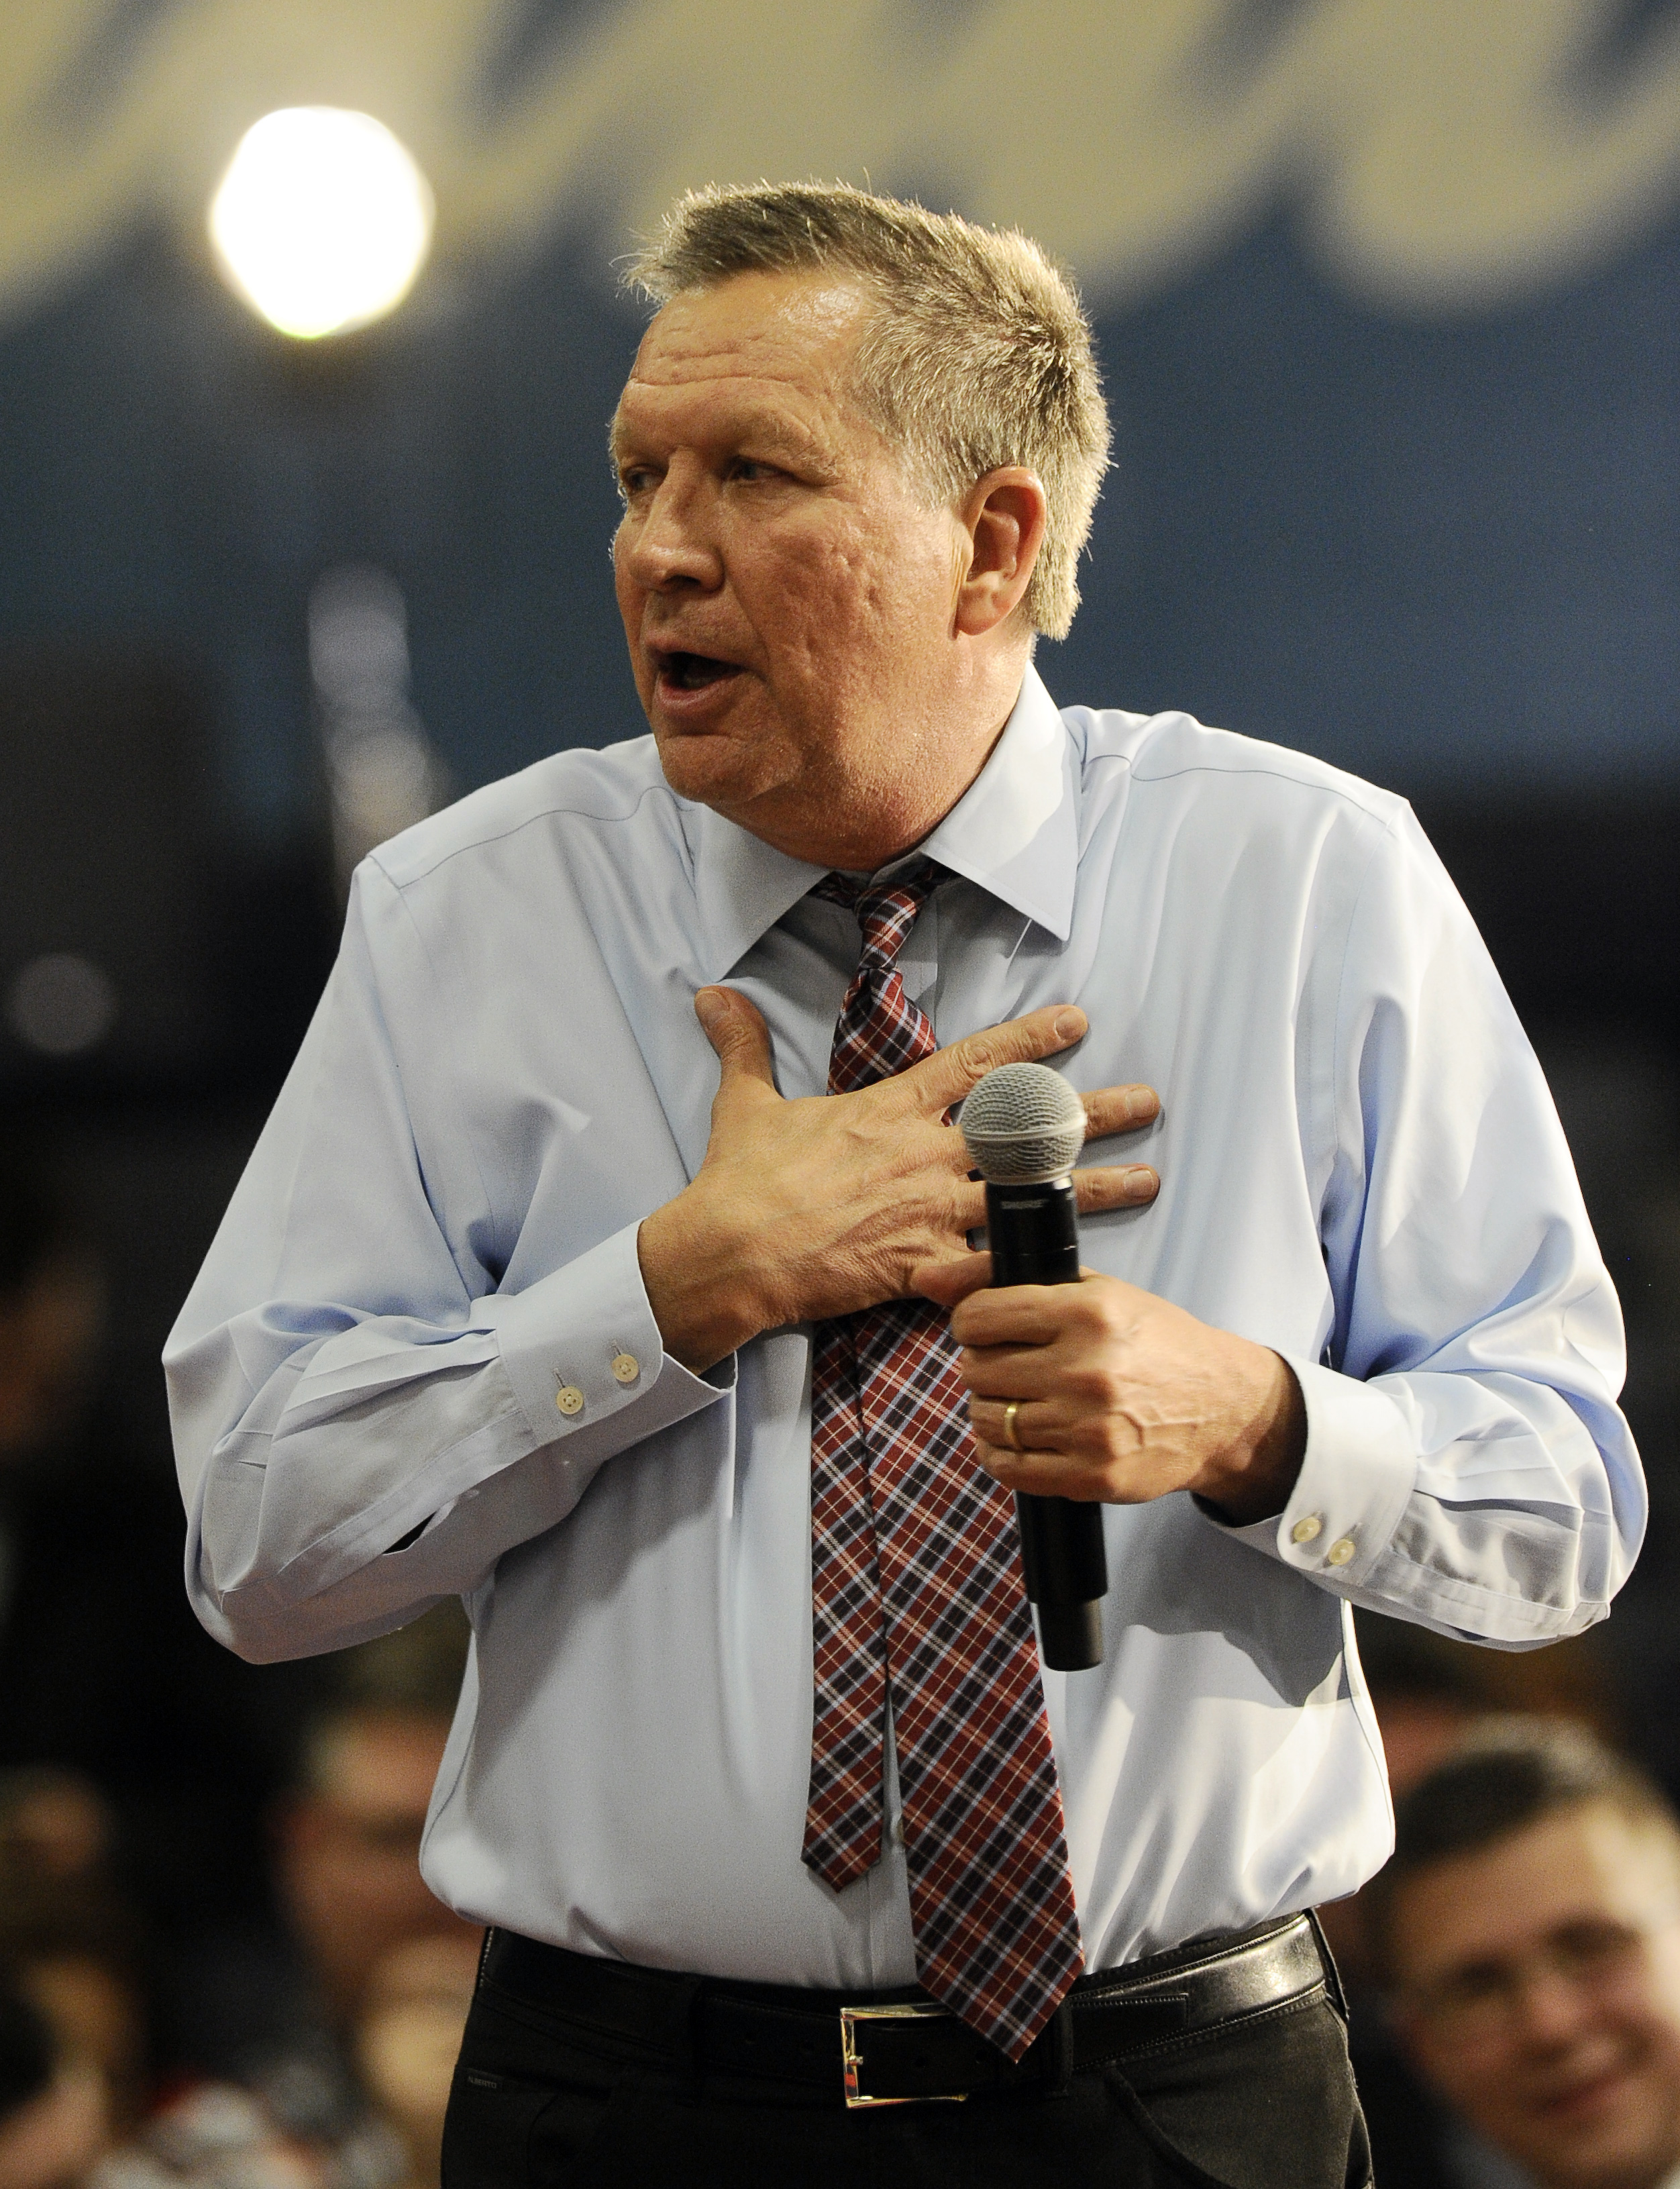 Kasich ask 'What the Hell?' on refusing service to LGBT customers